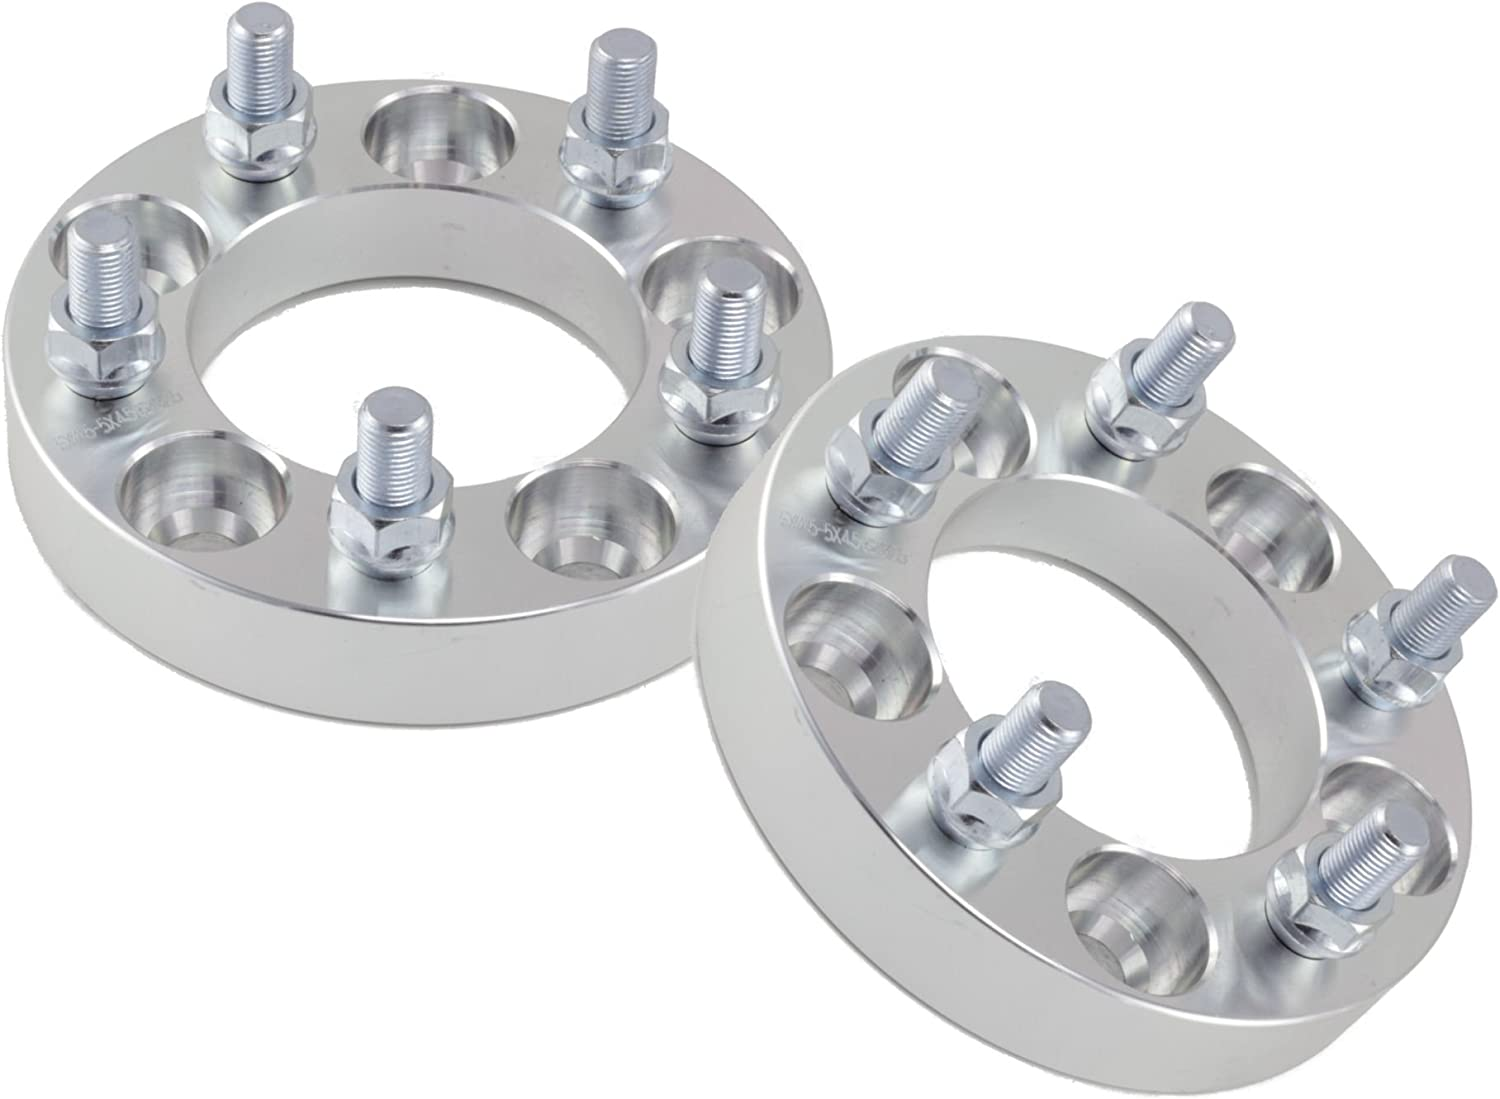 """(2) 1"""" (25mm)   5x114.3 (5x4.5) to 5x100 Wheel Adapters/Spacers   12x1.5 Studs   1.0 inch Thick"""